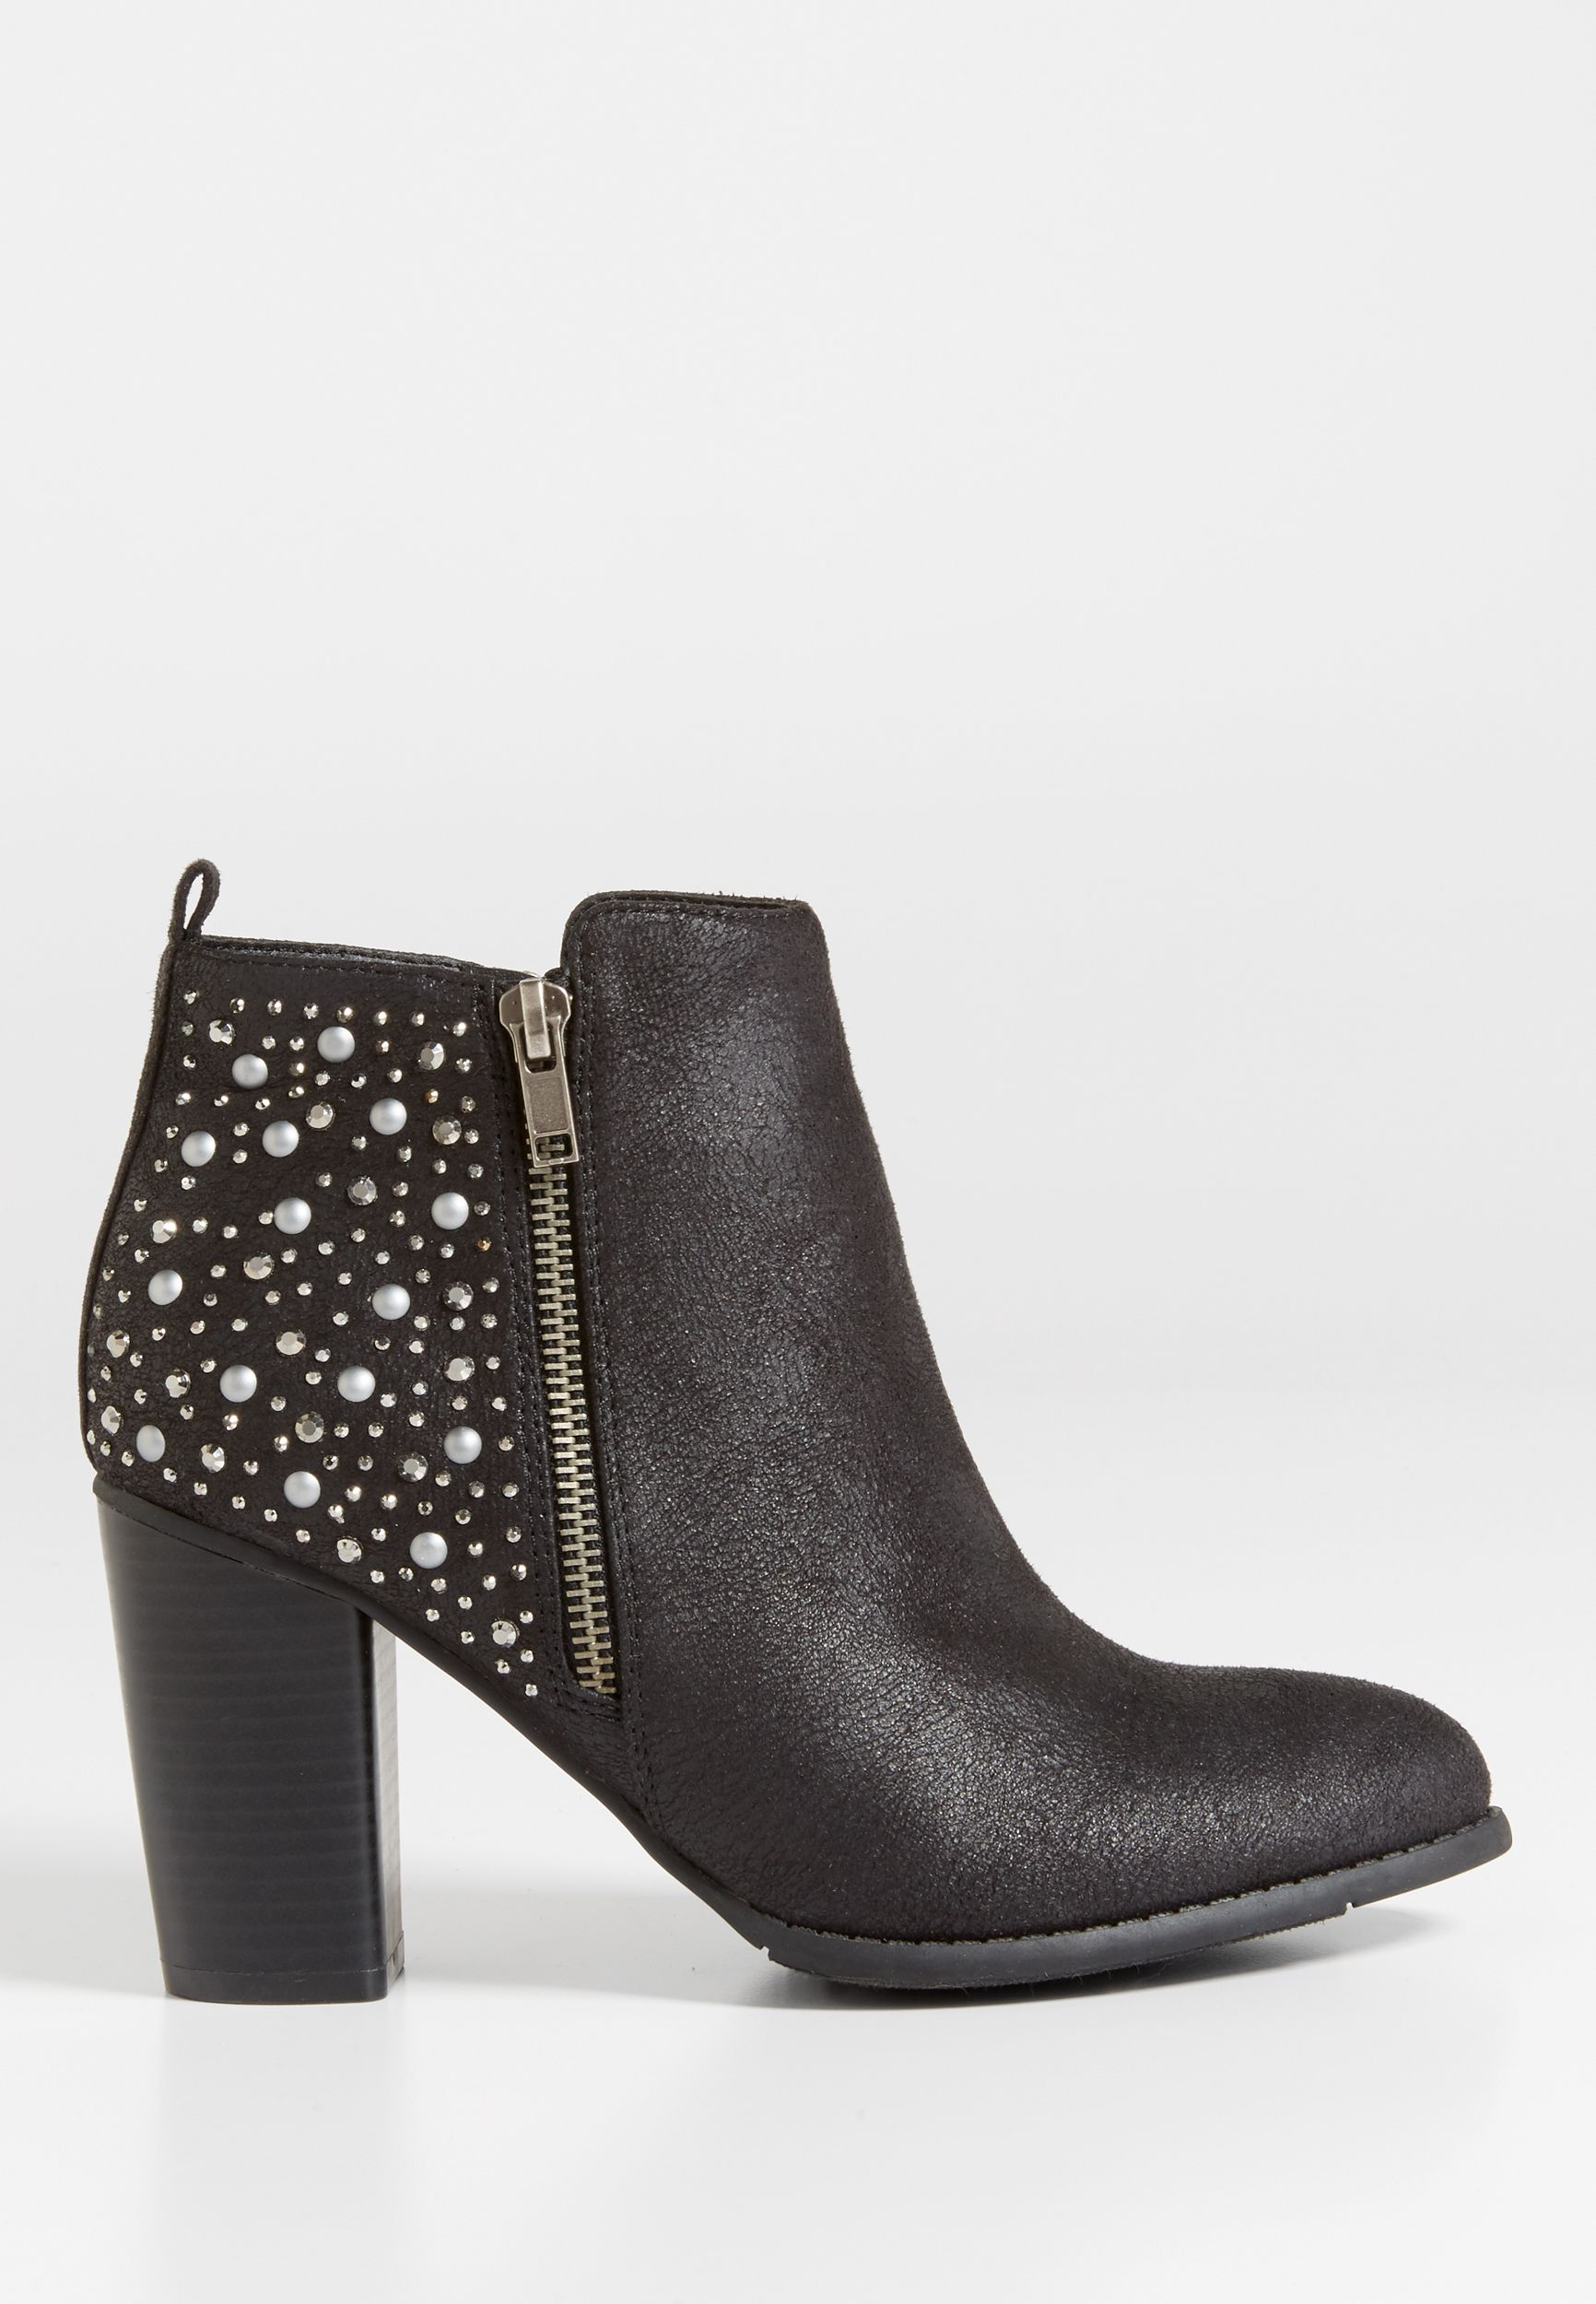 630ede46826f9 Brandy embellished heeled bootie (original price